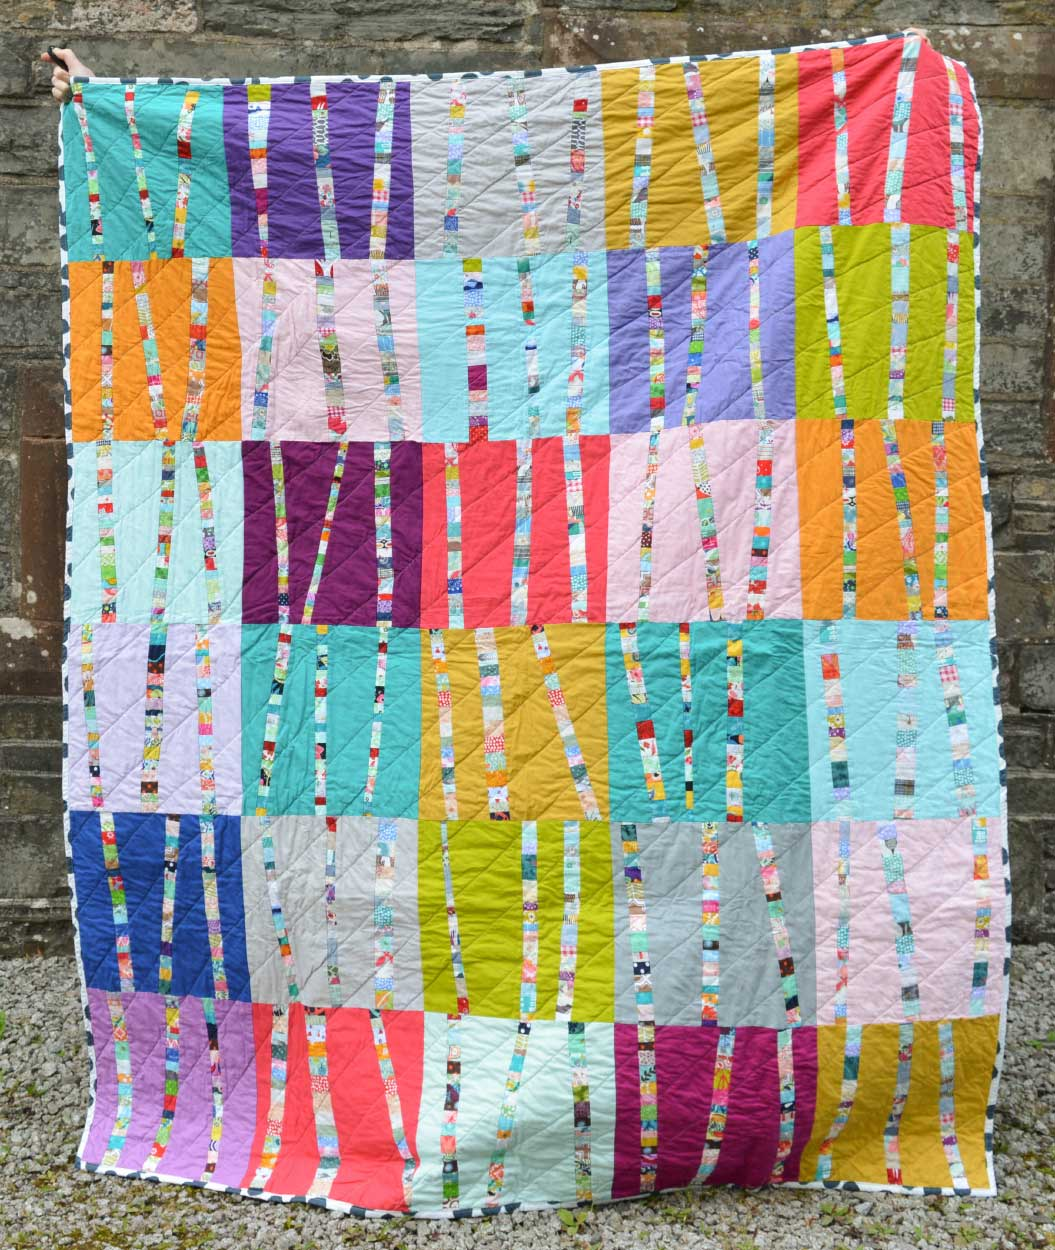 Quilts for Grenfell - Dumfries & Galloway Modern Quilt Guild (DGMQG) // Birch Blocks Quilt